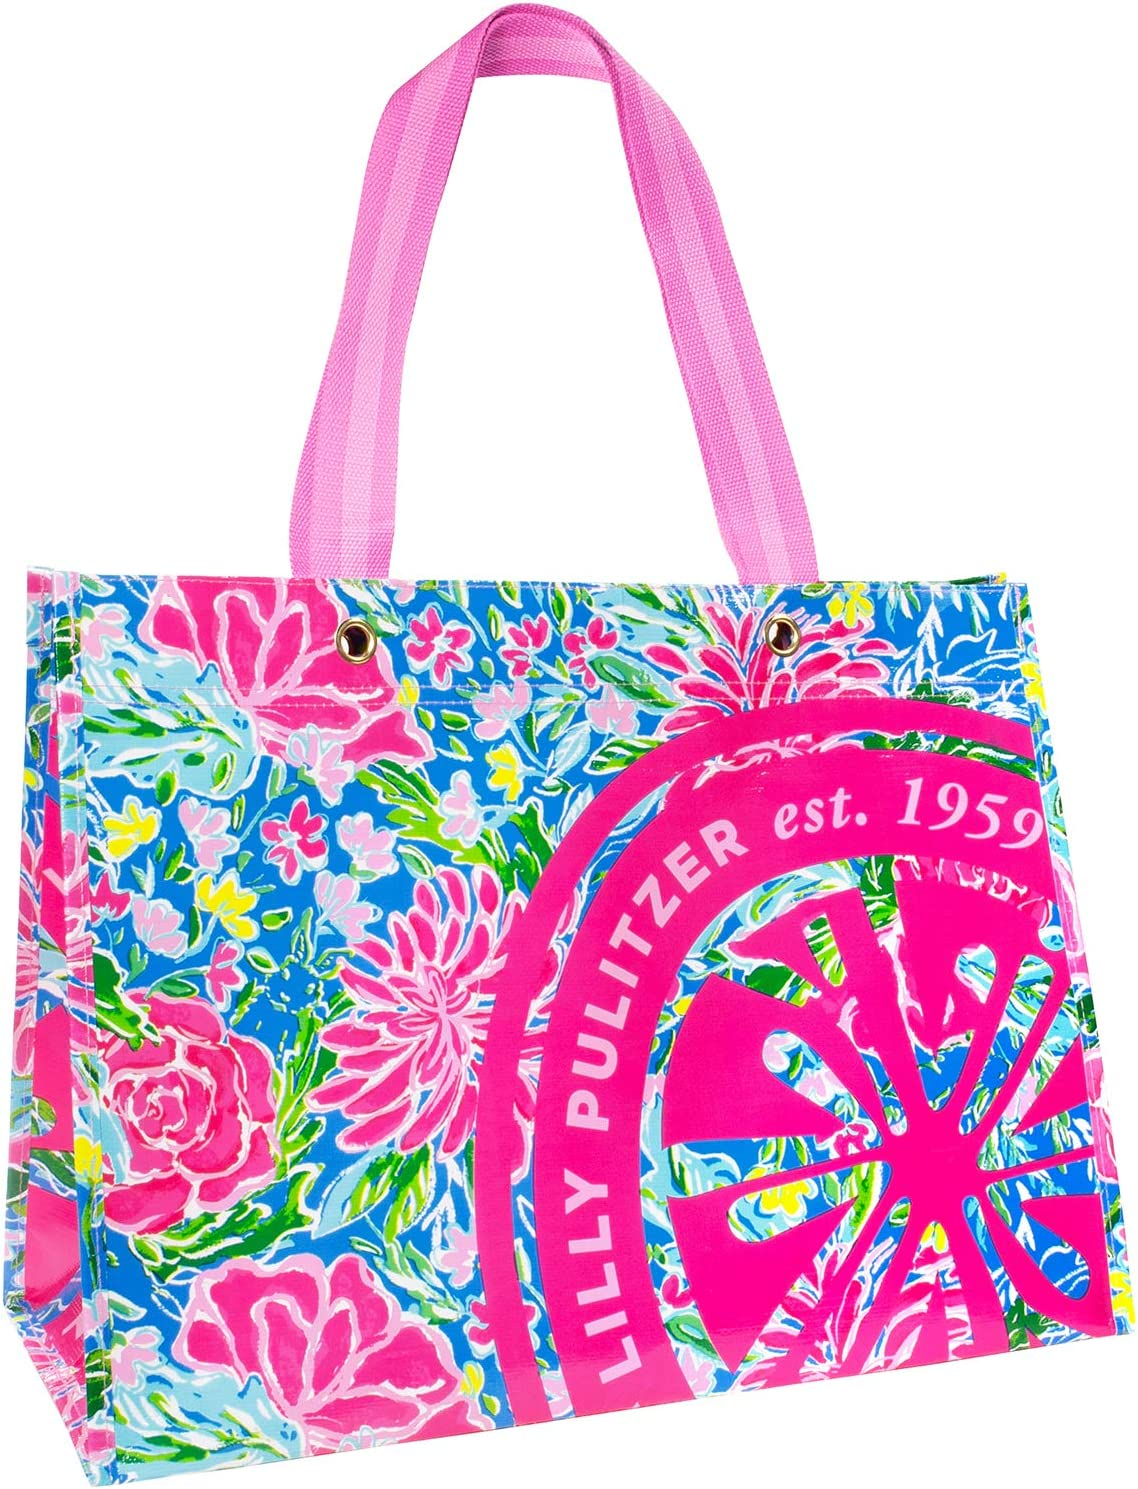 Lilly Pulitzer XL Market Shopper Bag, Oversize Reusable Grocery Tote with Comfortable Shoulder Straps, Bunny Business